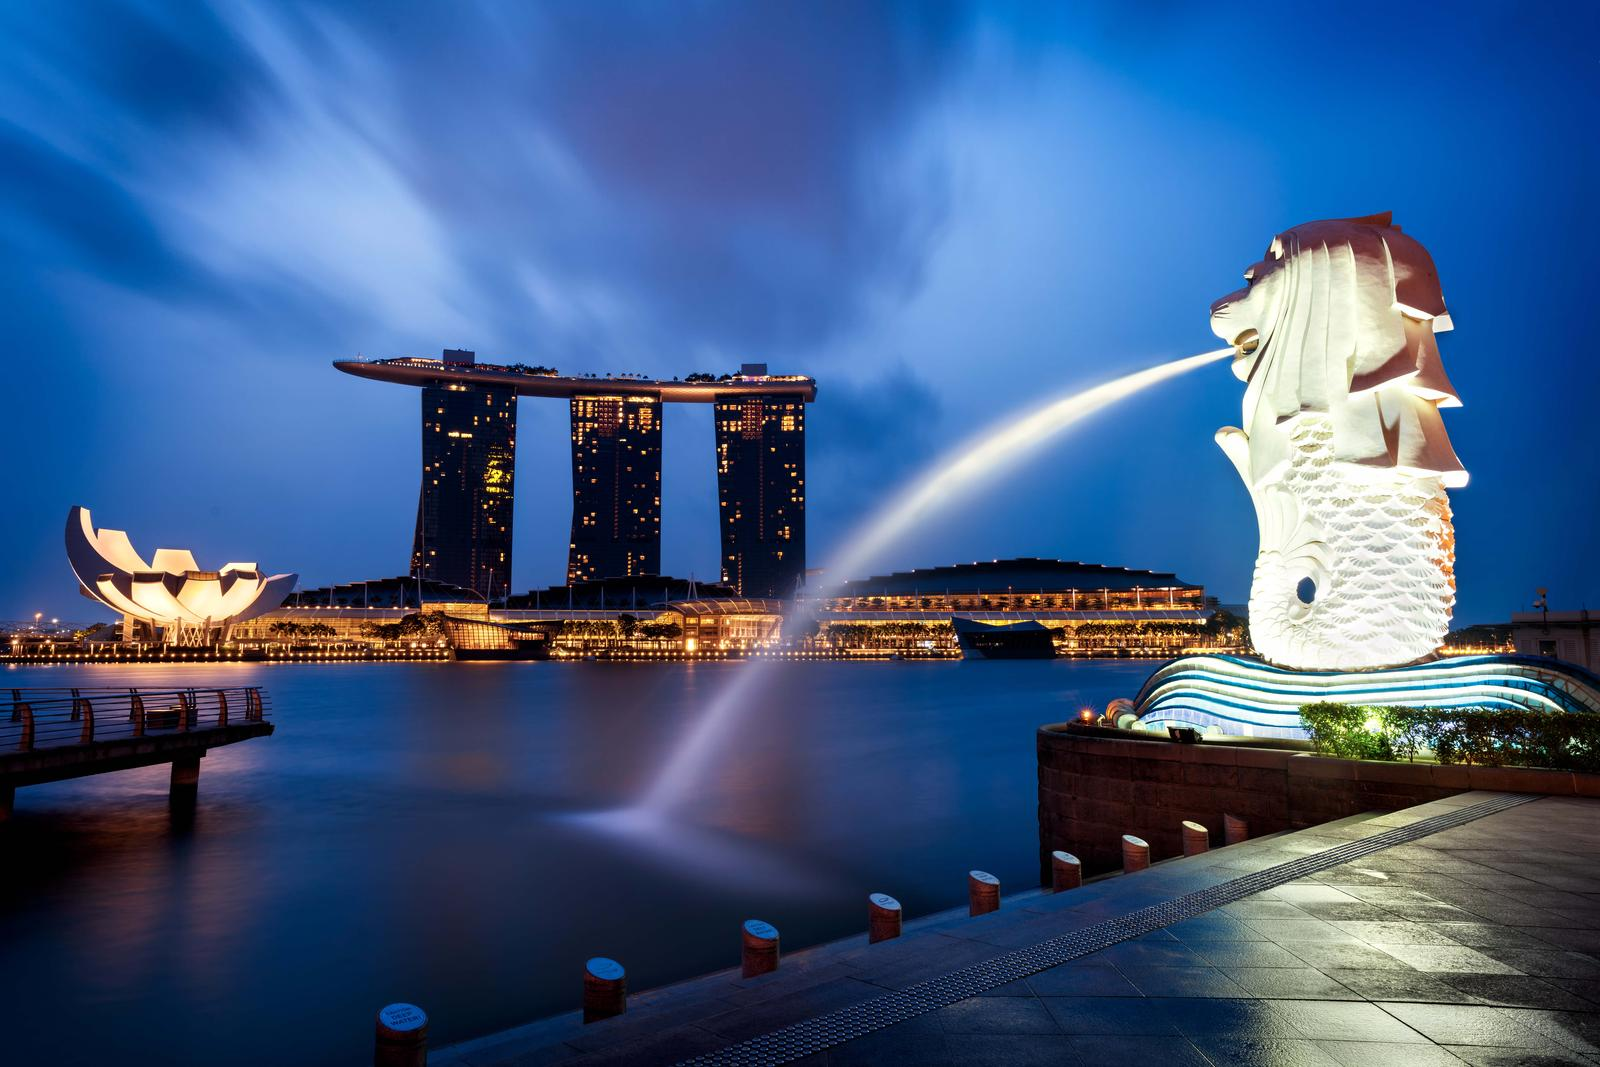 Agartala to Singapore flights